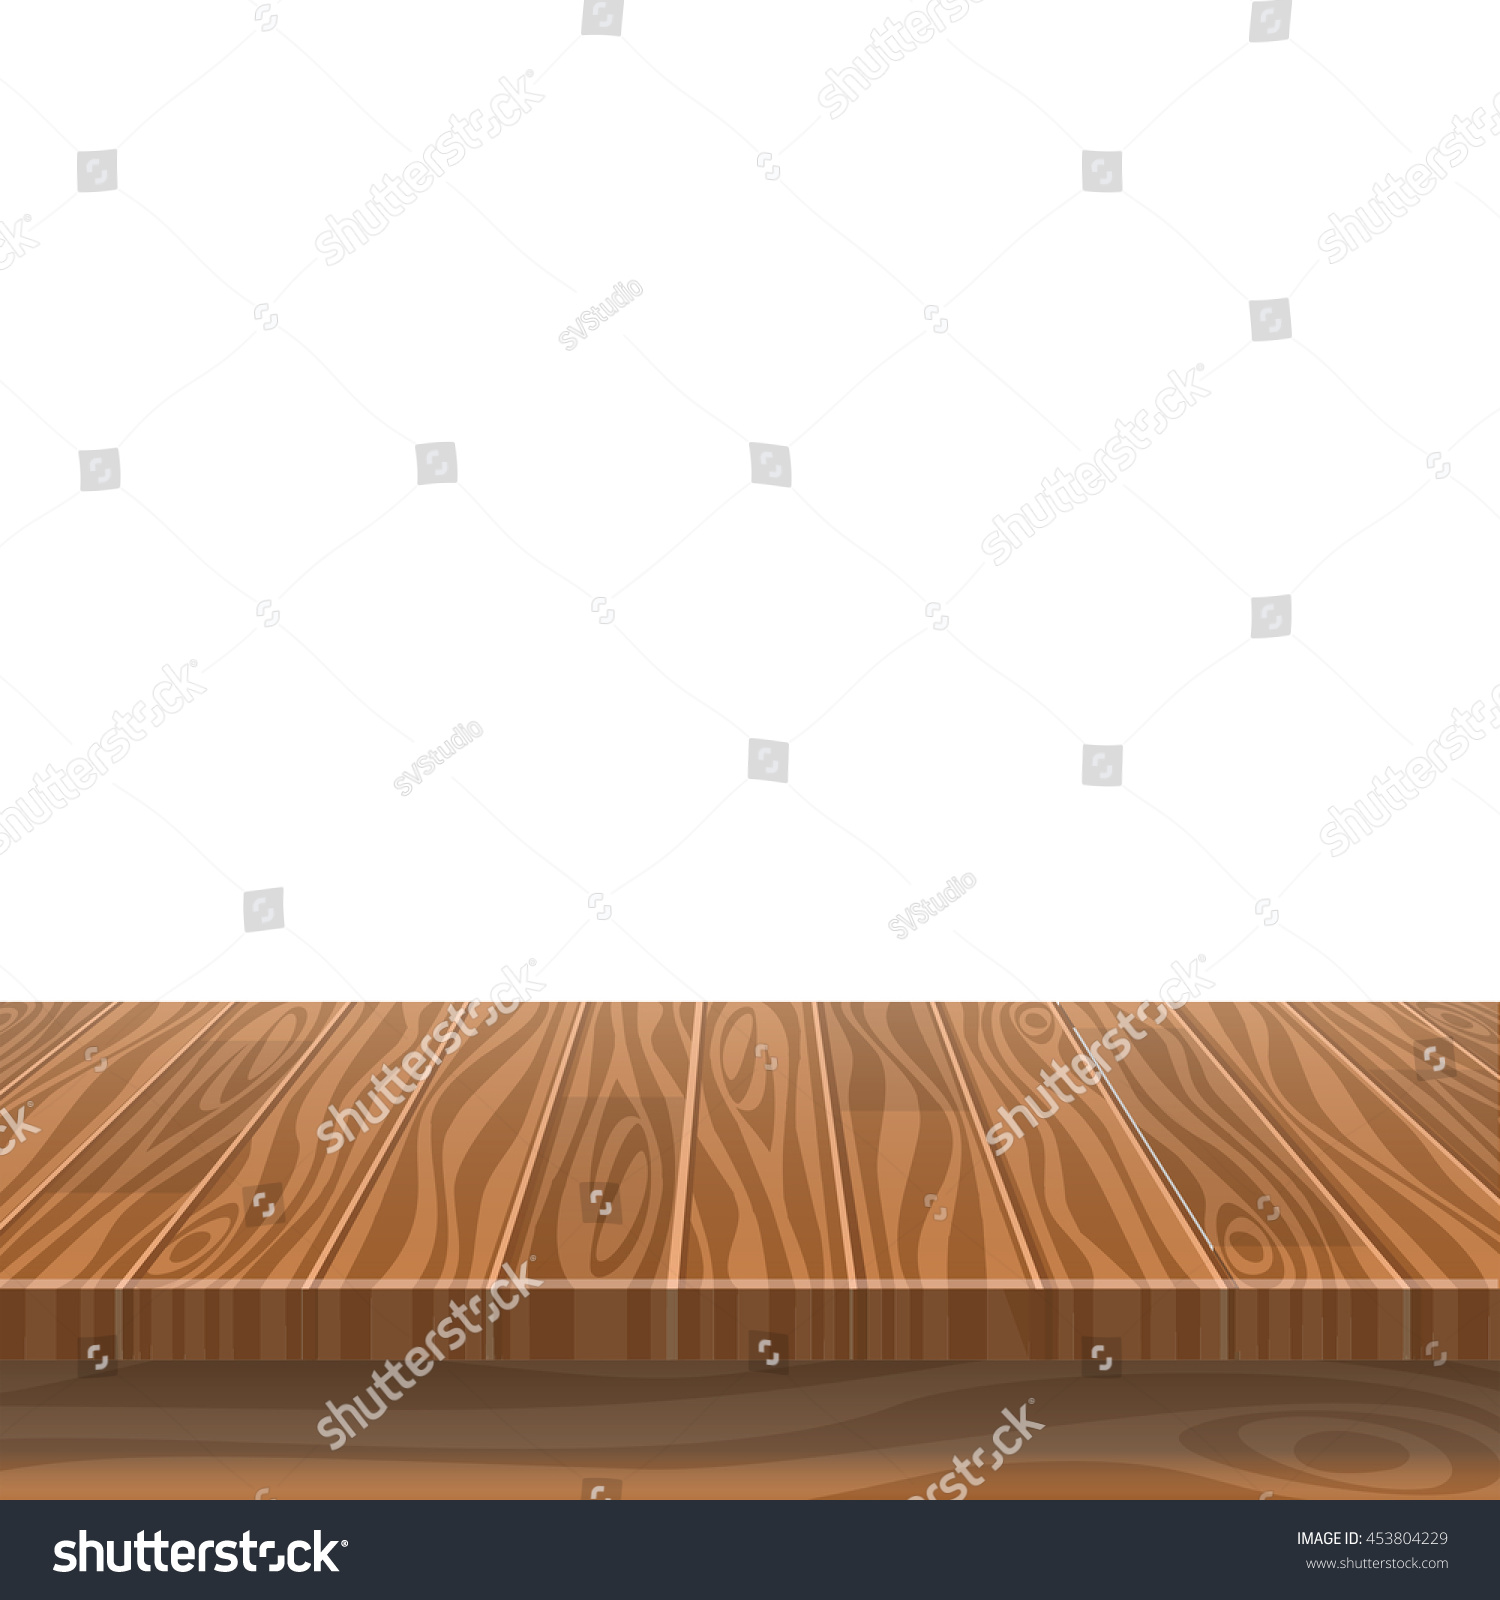 wooden top isolated - photo #36